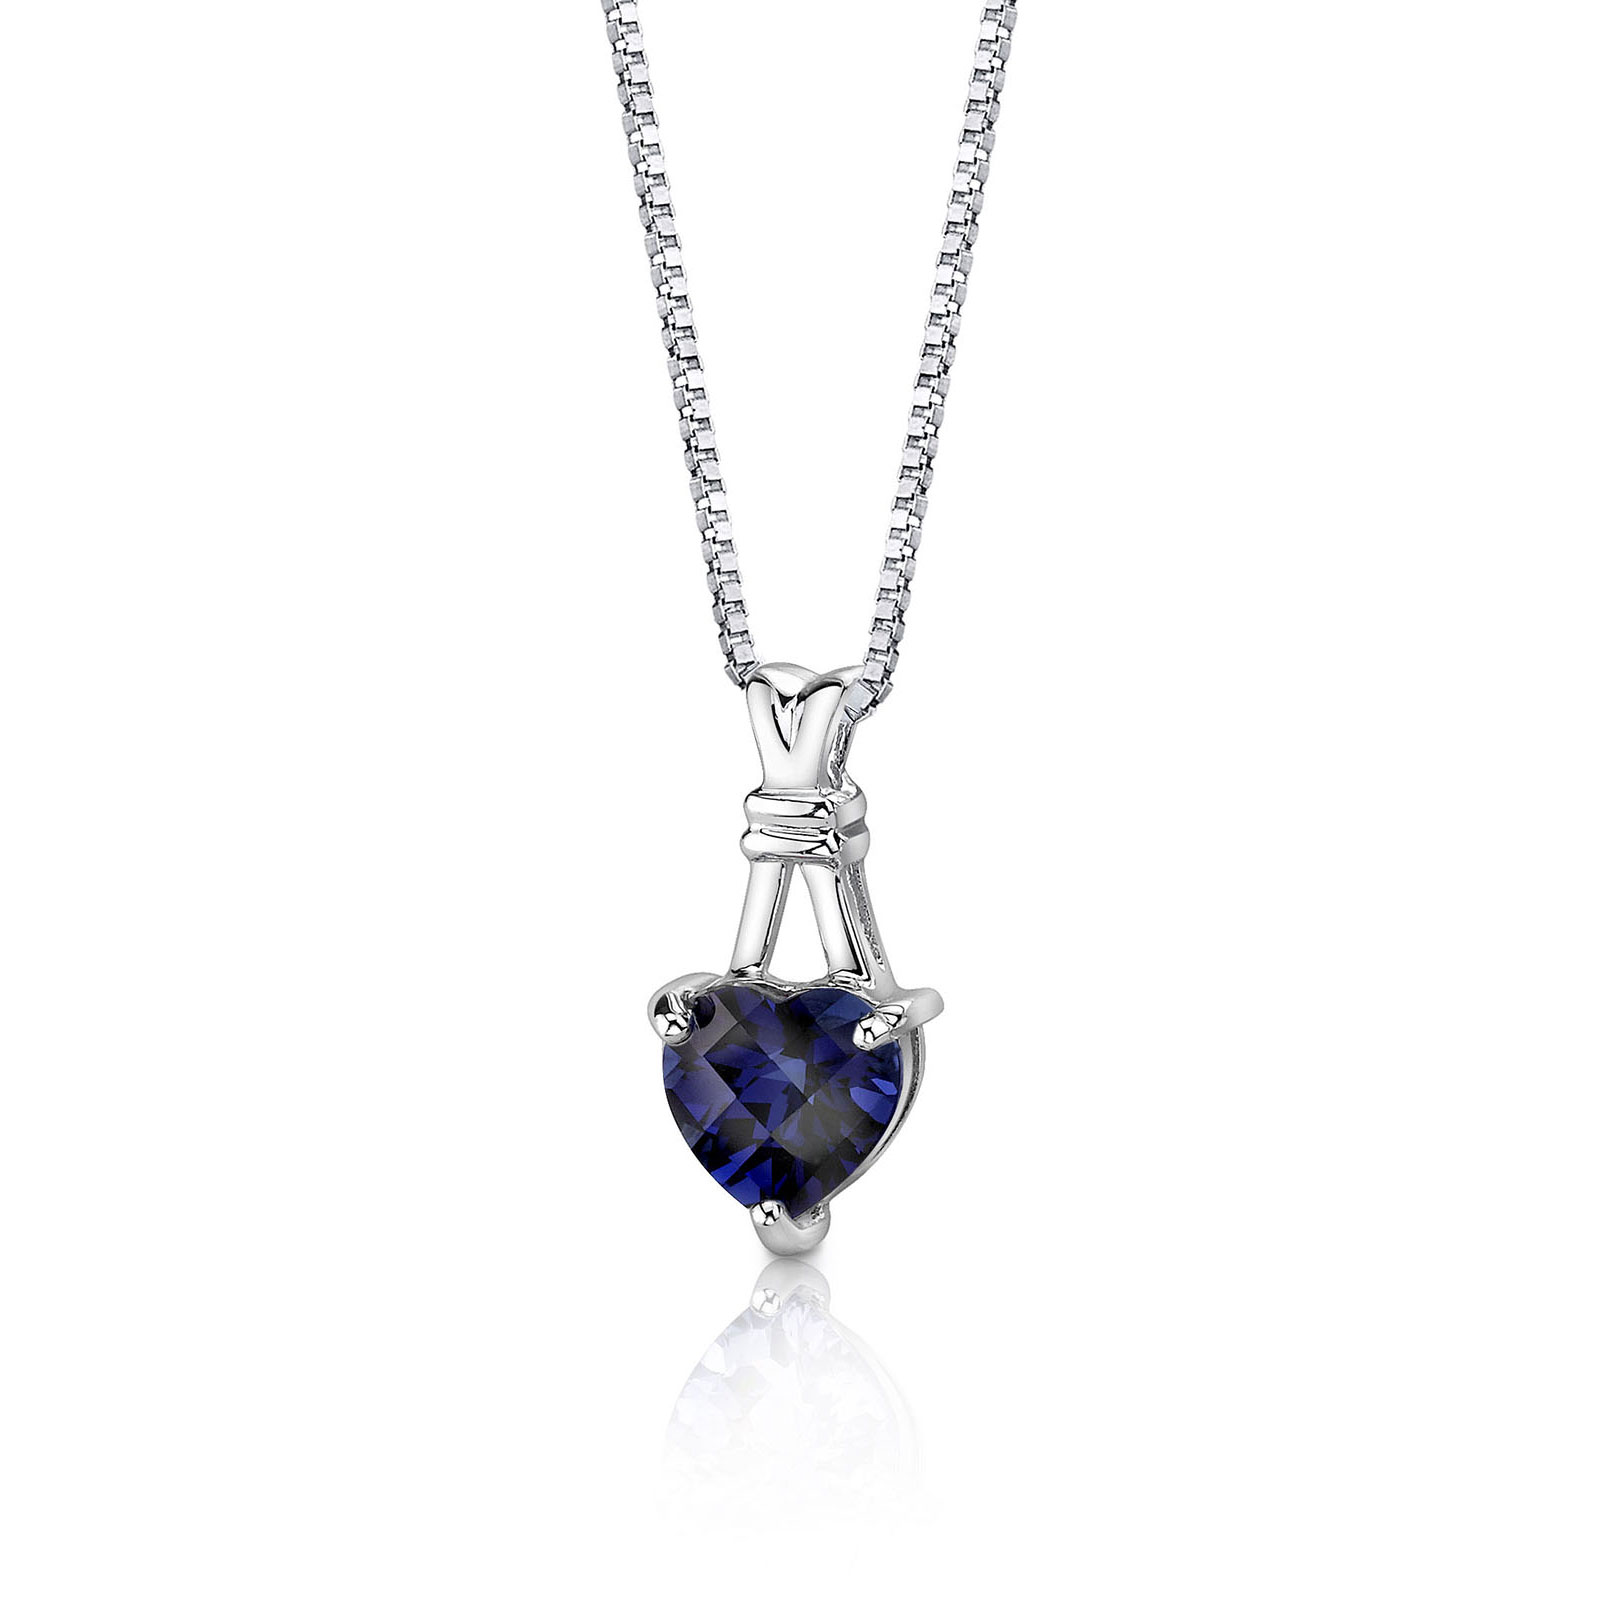 Heart Shaped Sapphire Pendant Necklace in Sterling Silver